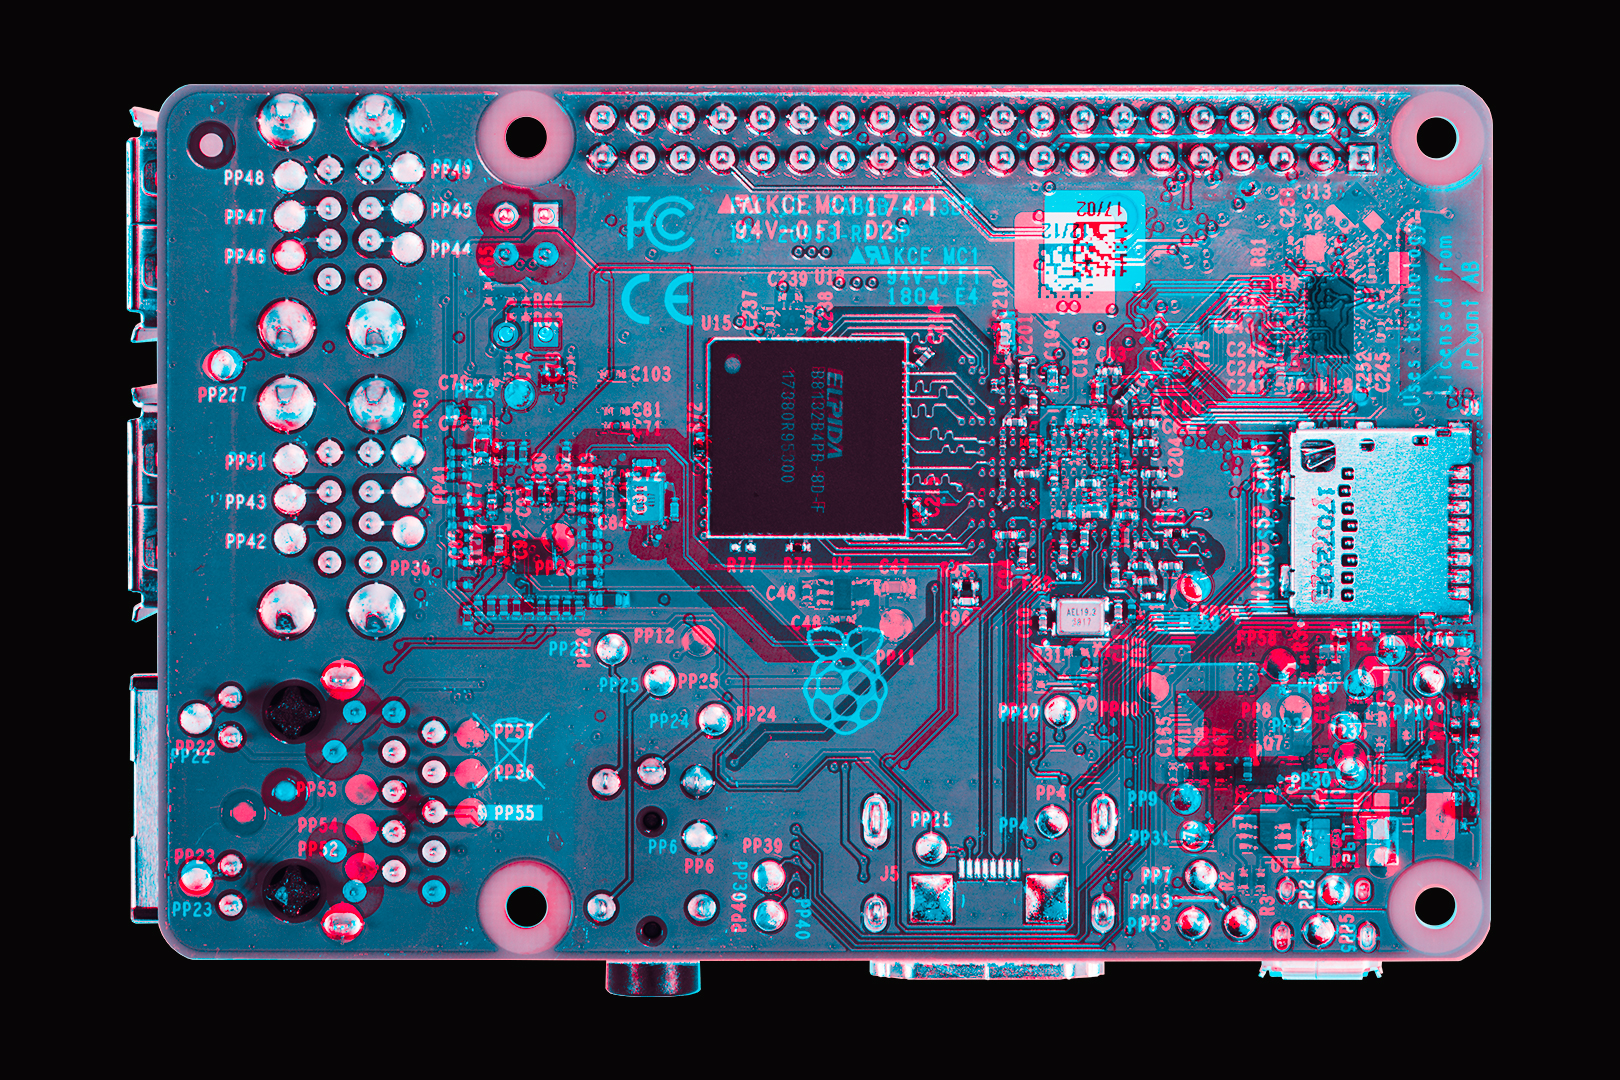 Circuit Board Layout Bottom Layer